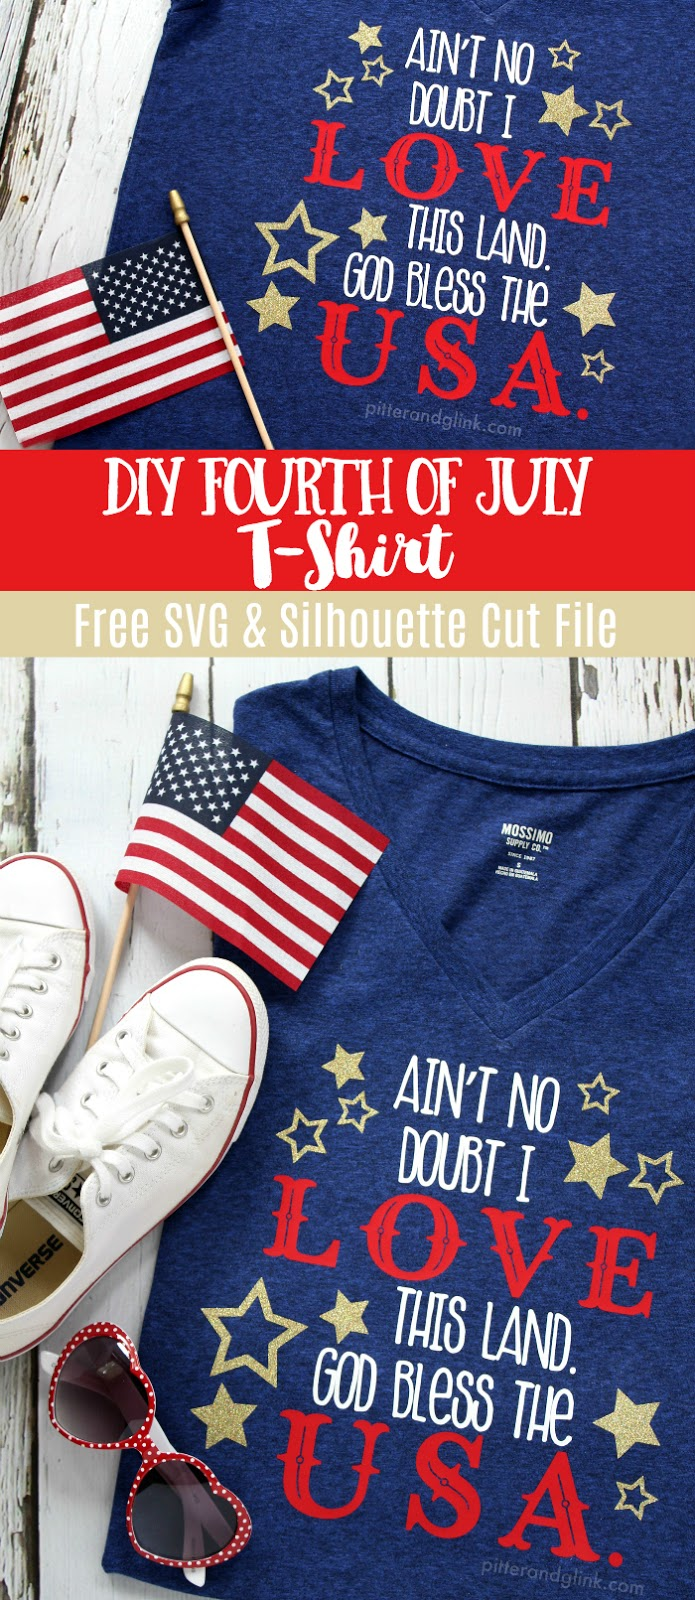 DIY Fourth of July T-shirt + Free Cut File